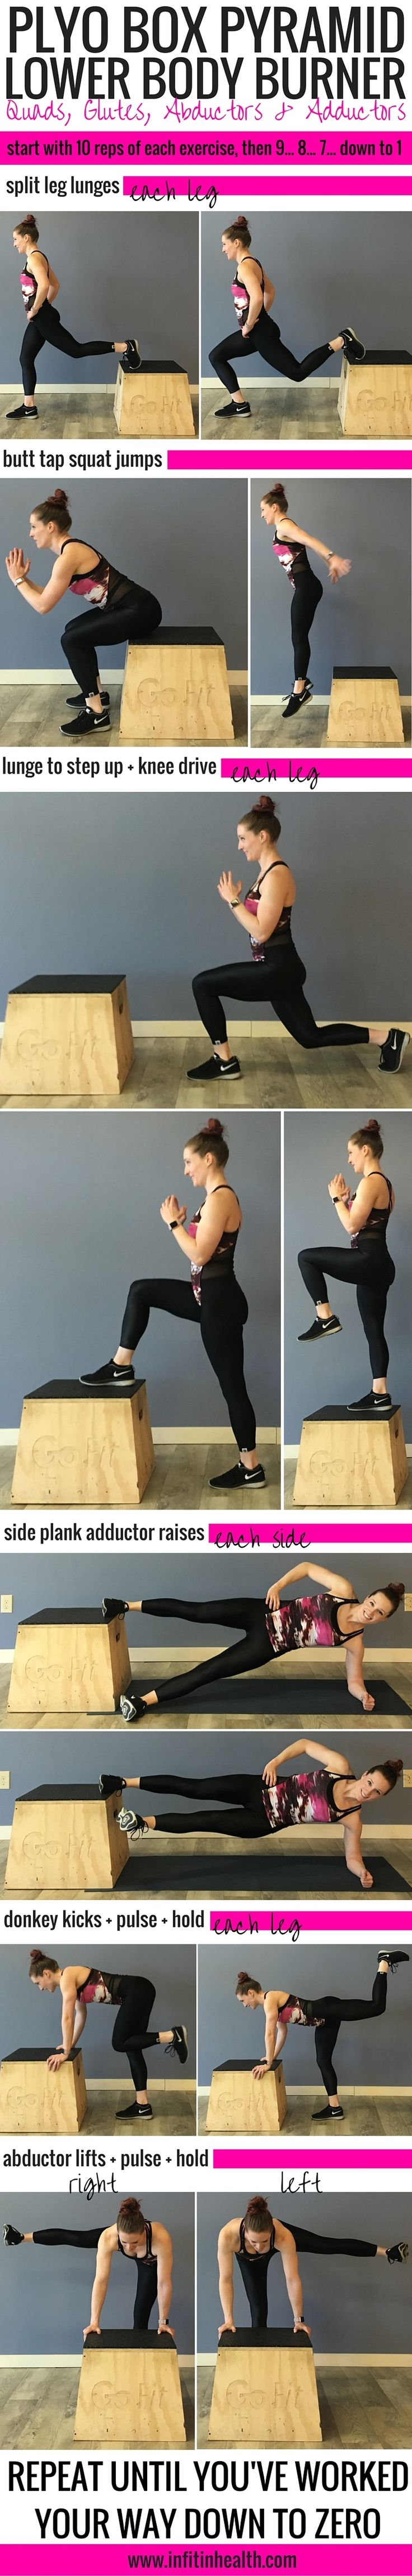 Plyo Box Pyramid Lower Body Burner | In Fitness and In Health